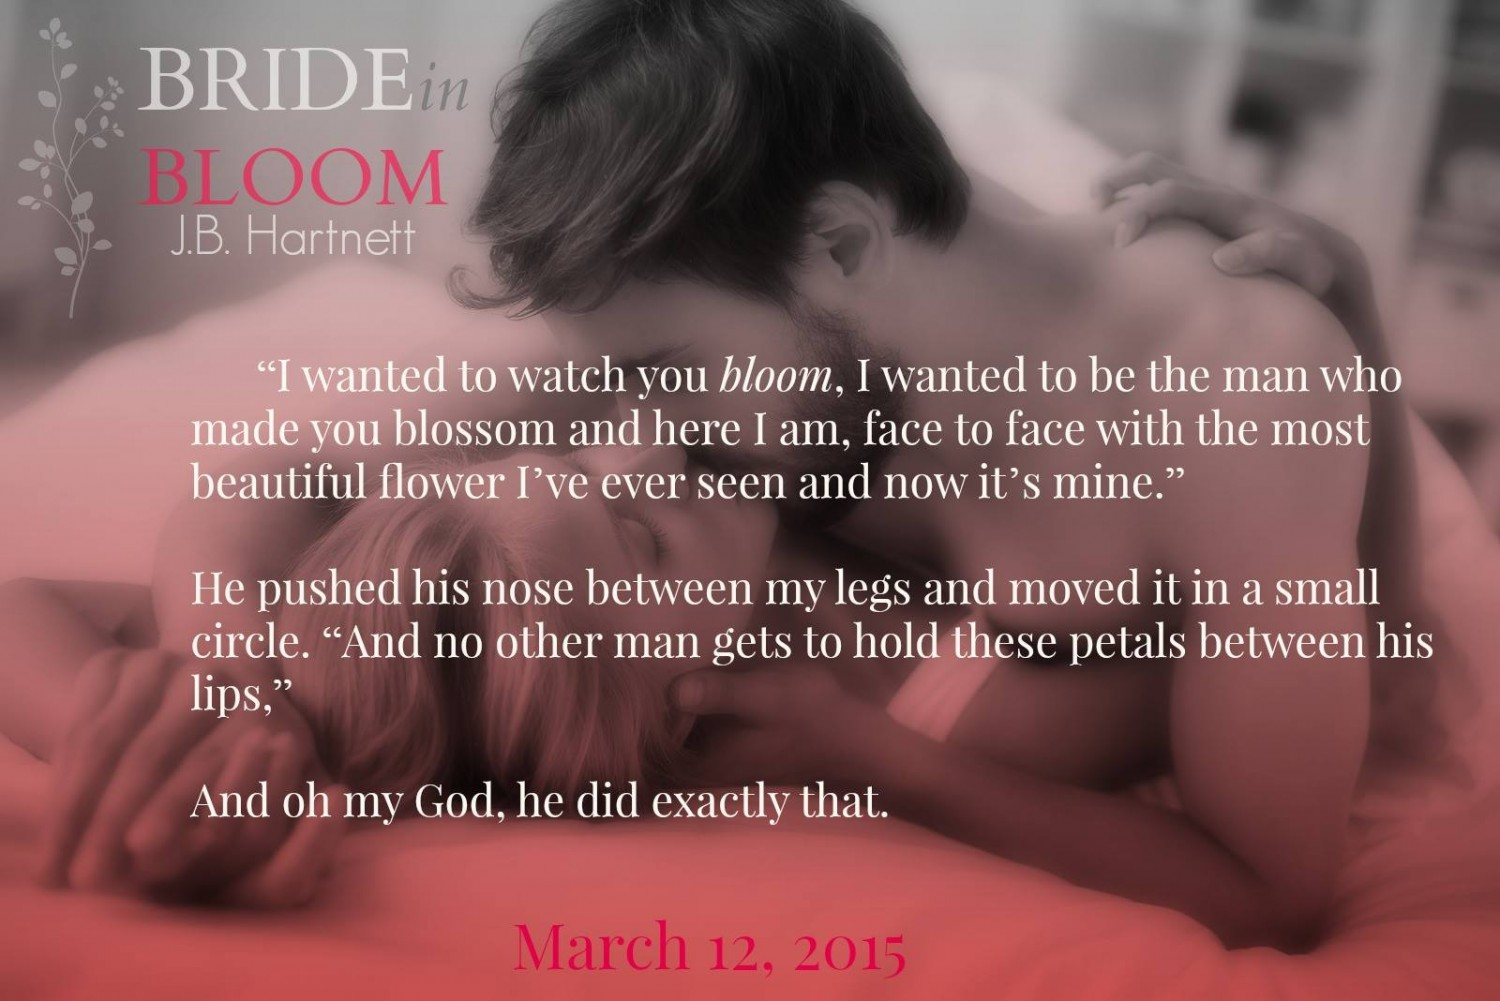 bride in bloom teaser